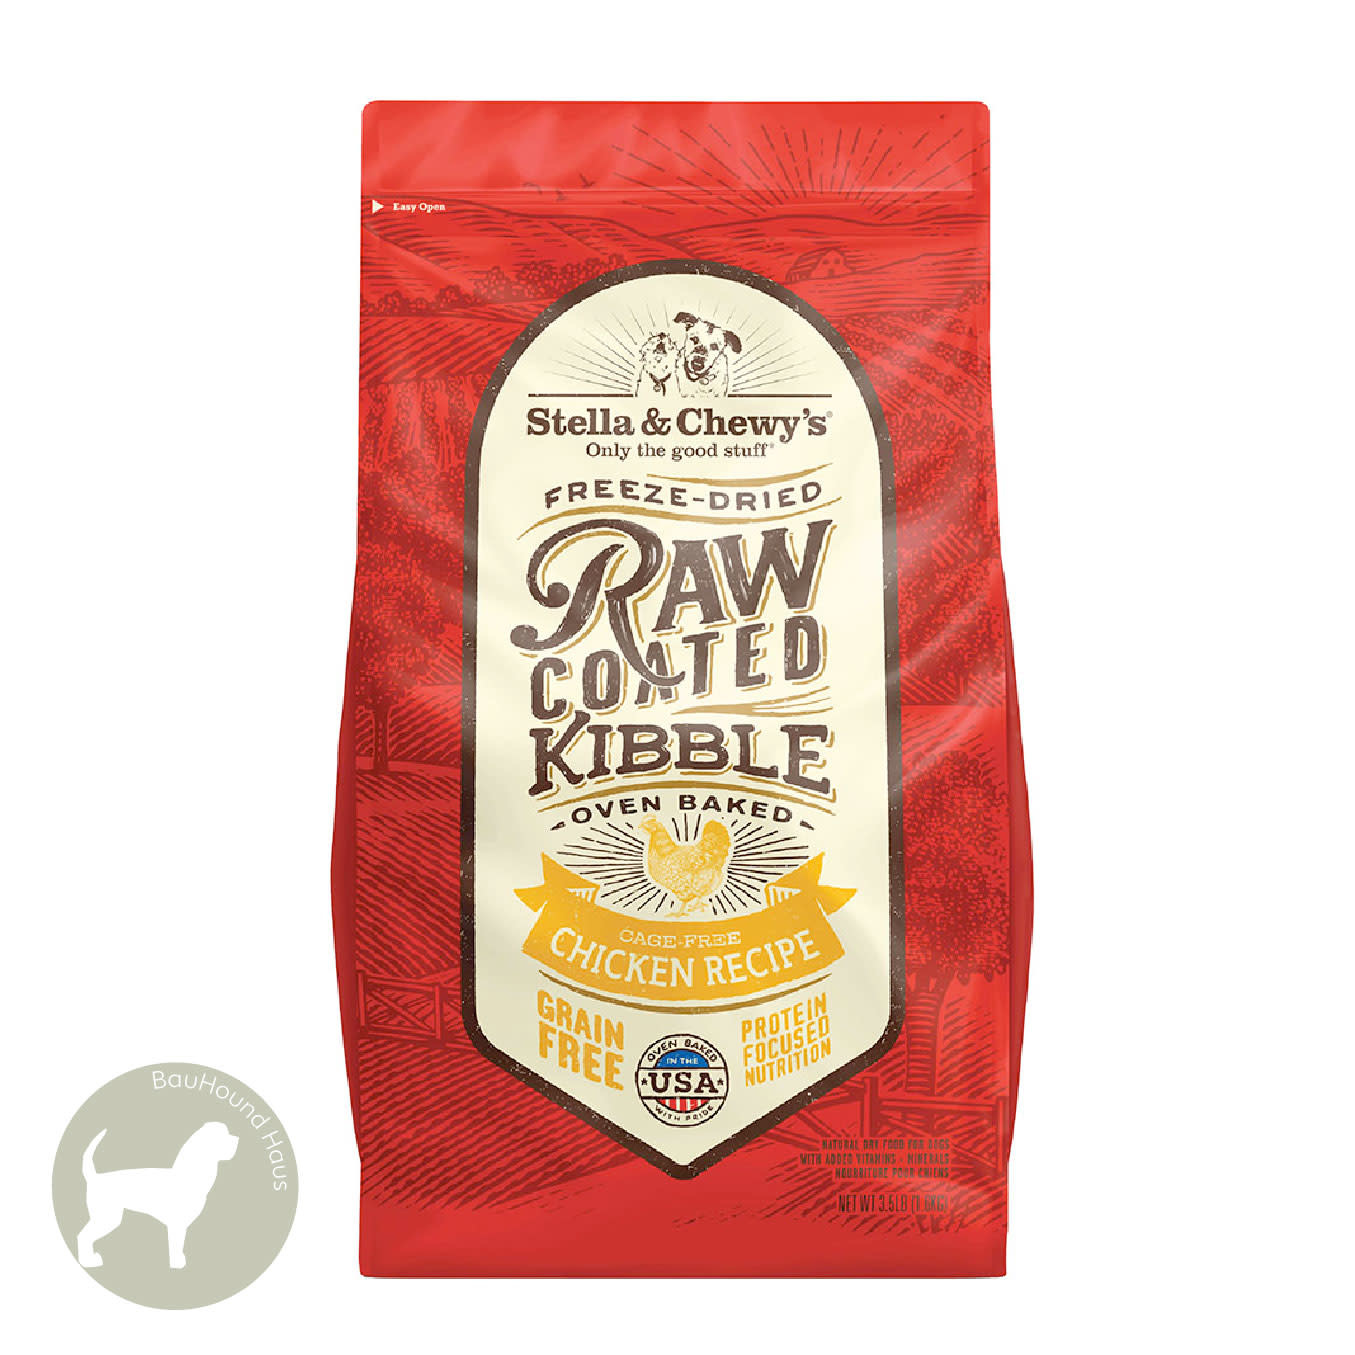 Stella & Chewy's Stella & Chewy's Freeze Dried Raw Coated Kibble Chicken Recipe 3.5lb